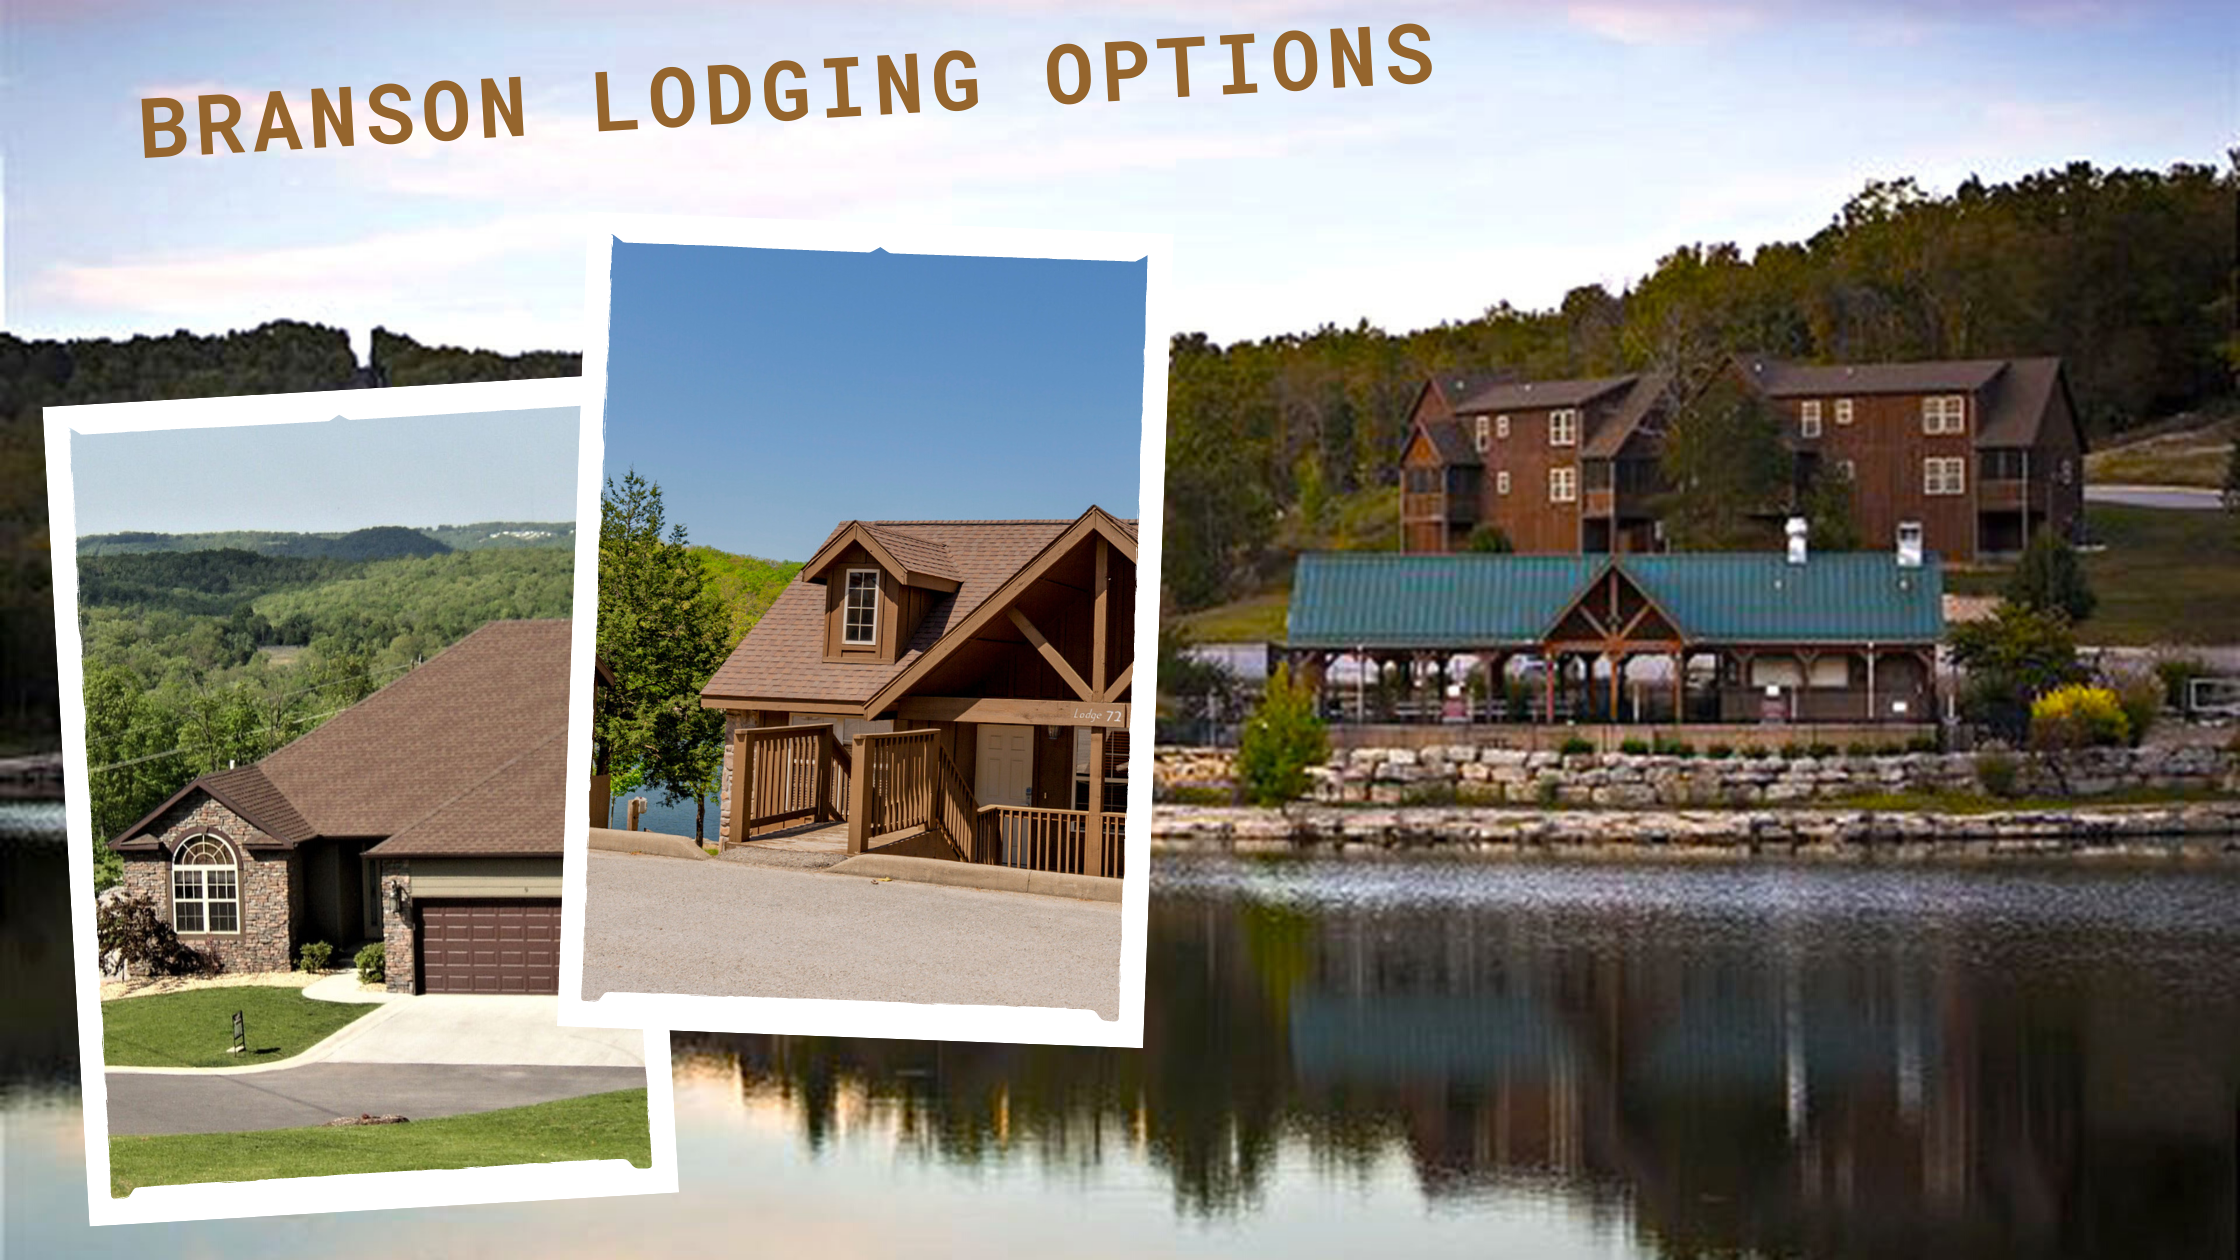 Branson Lodging Options Every Visitor Should Considering Checking Out